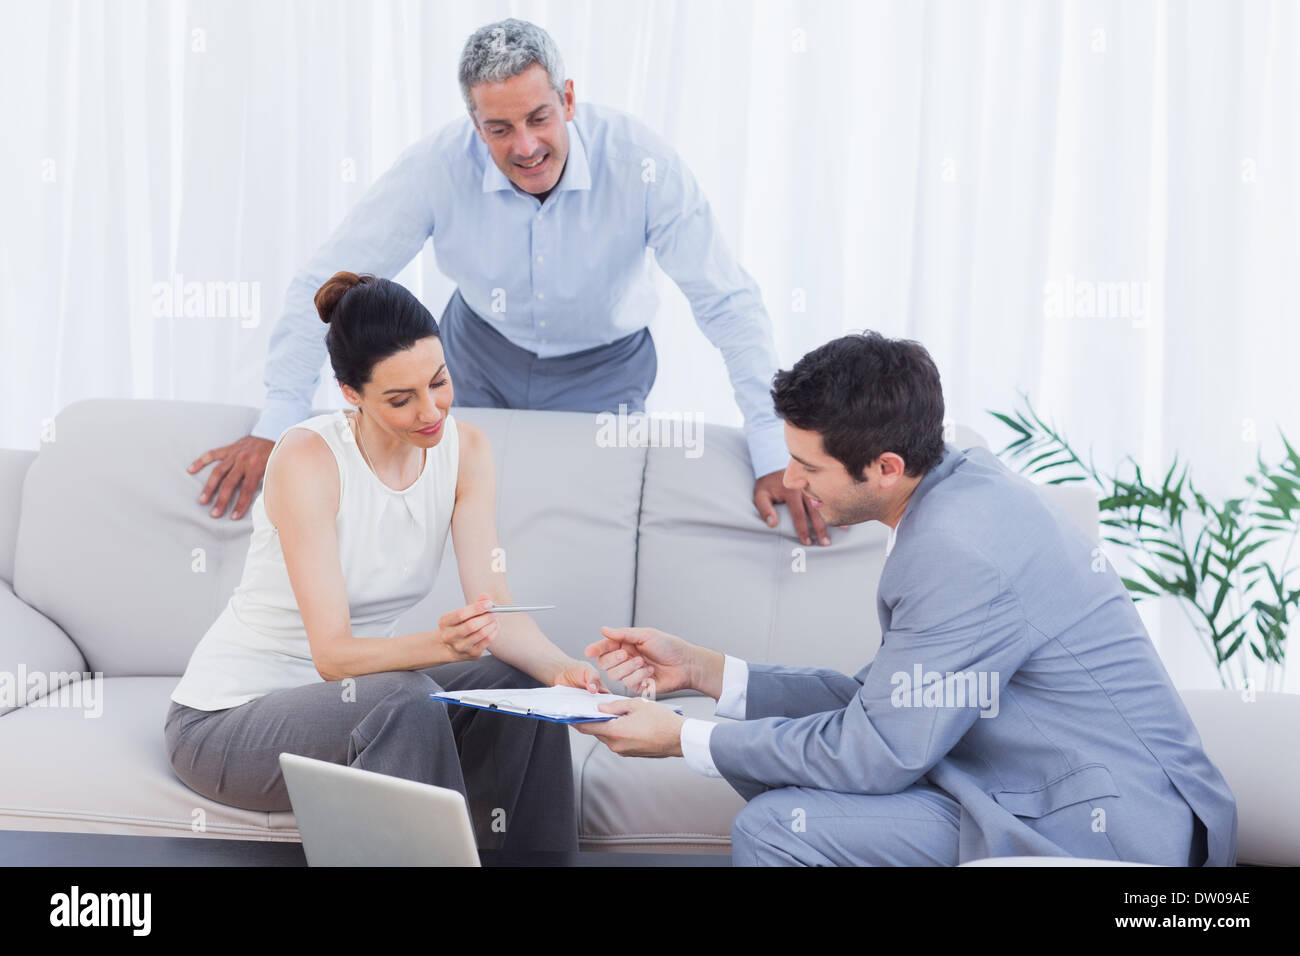 Salesman speaking with customers on couch - Stock Image